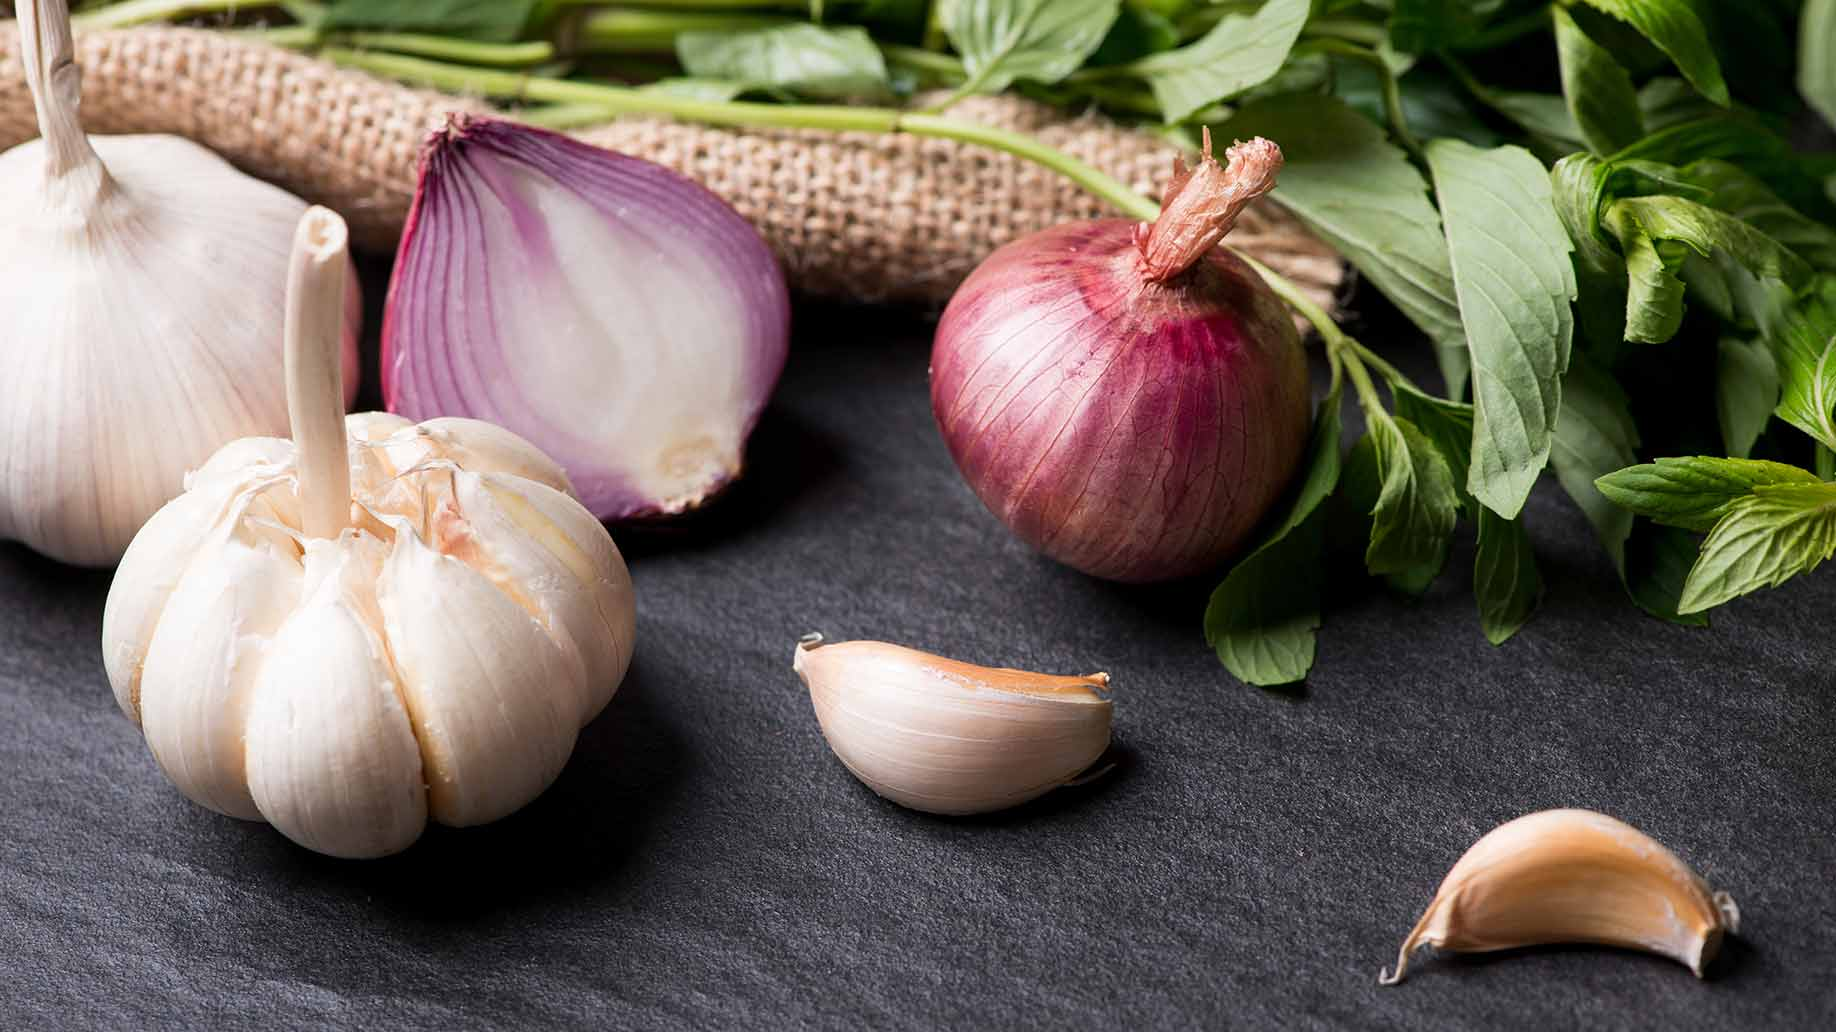 garlic onions hair loss thinning balding natural remedies